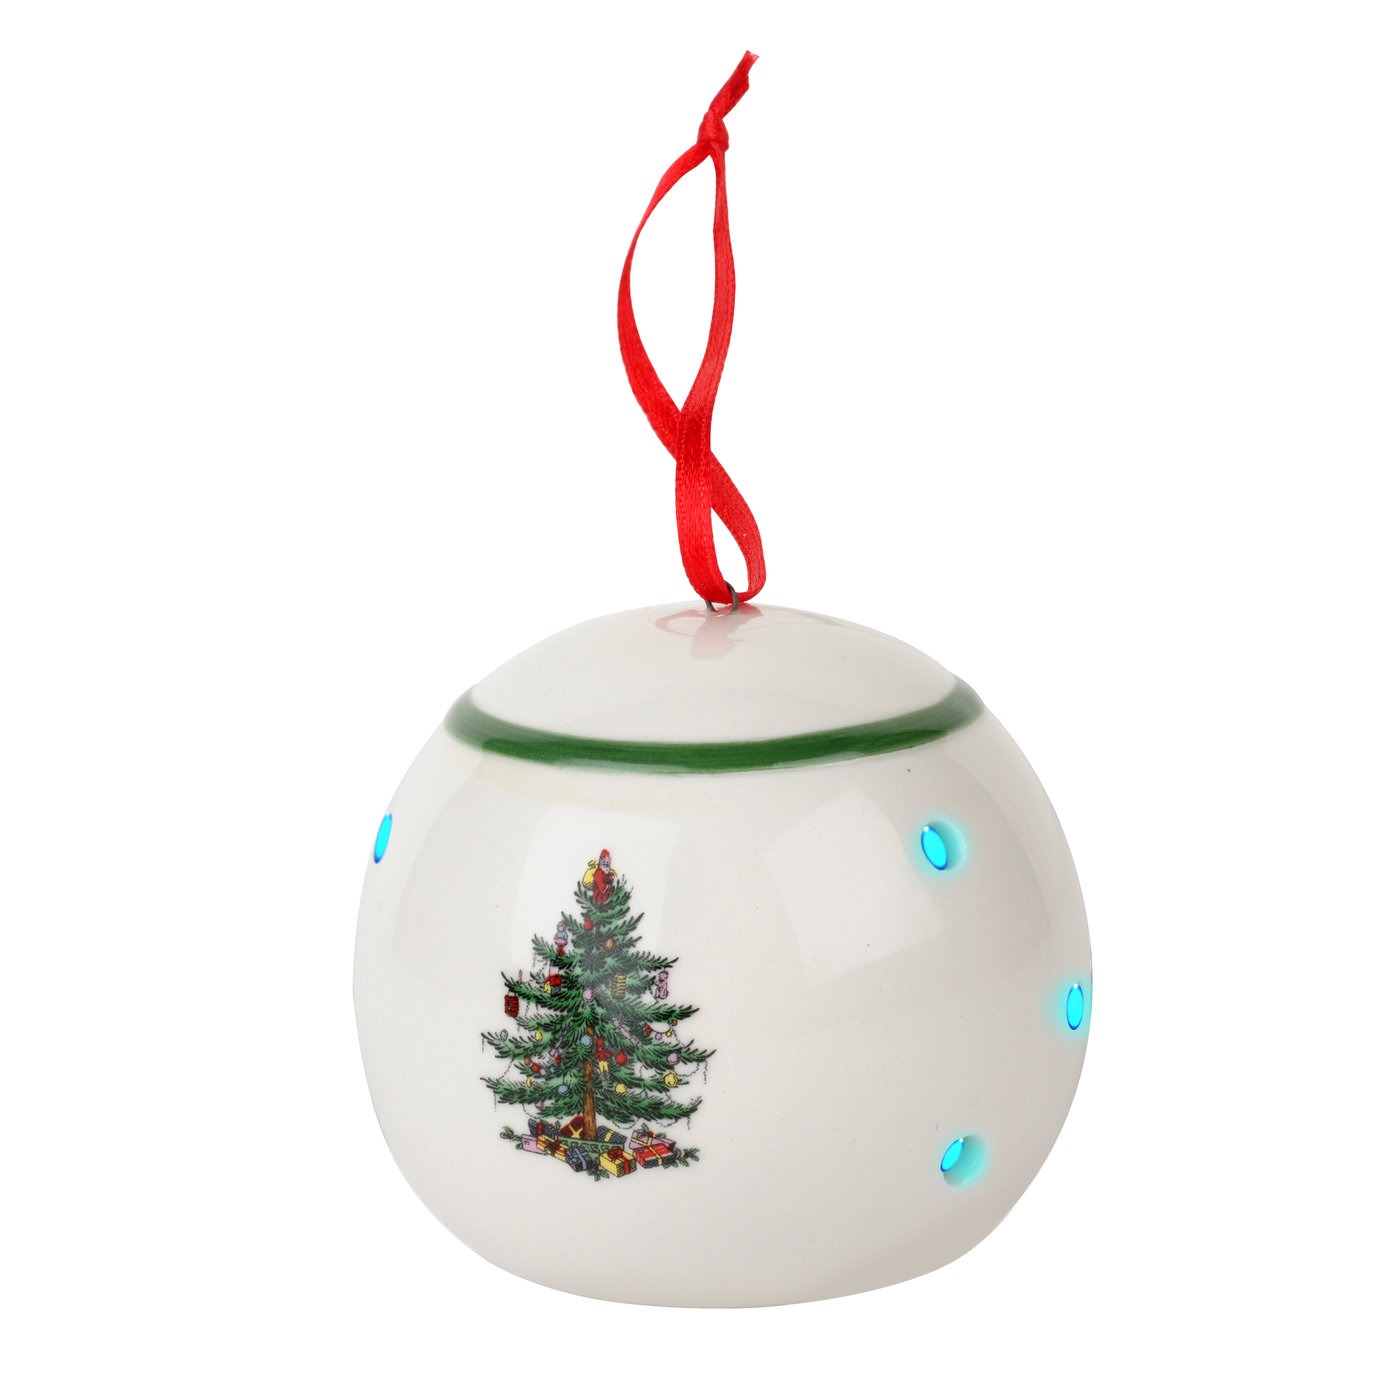 Spode Christmas Tree Multicolor LED Bauble Ornament image number 0